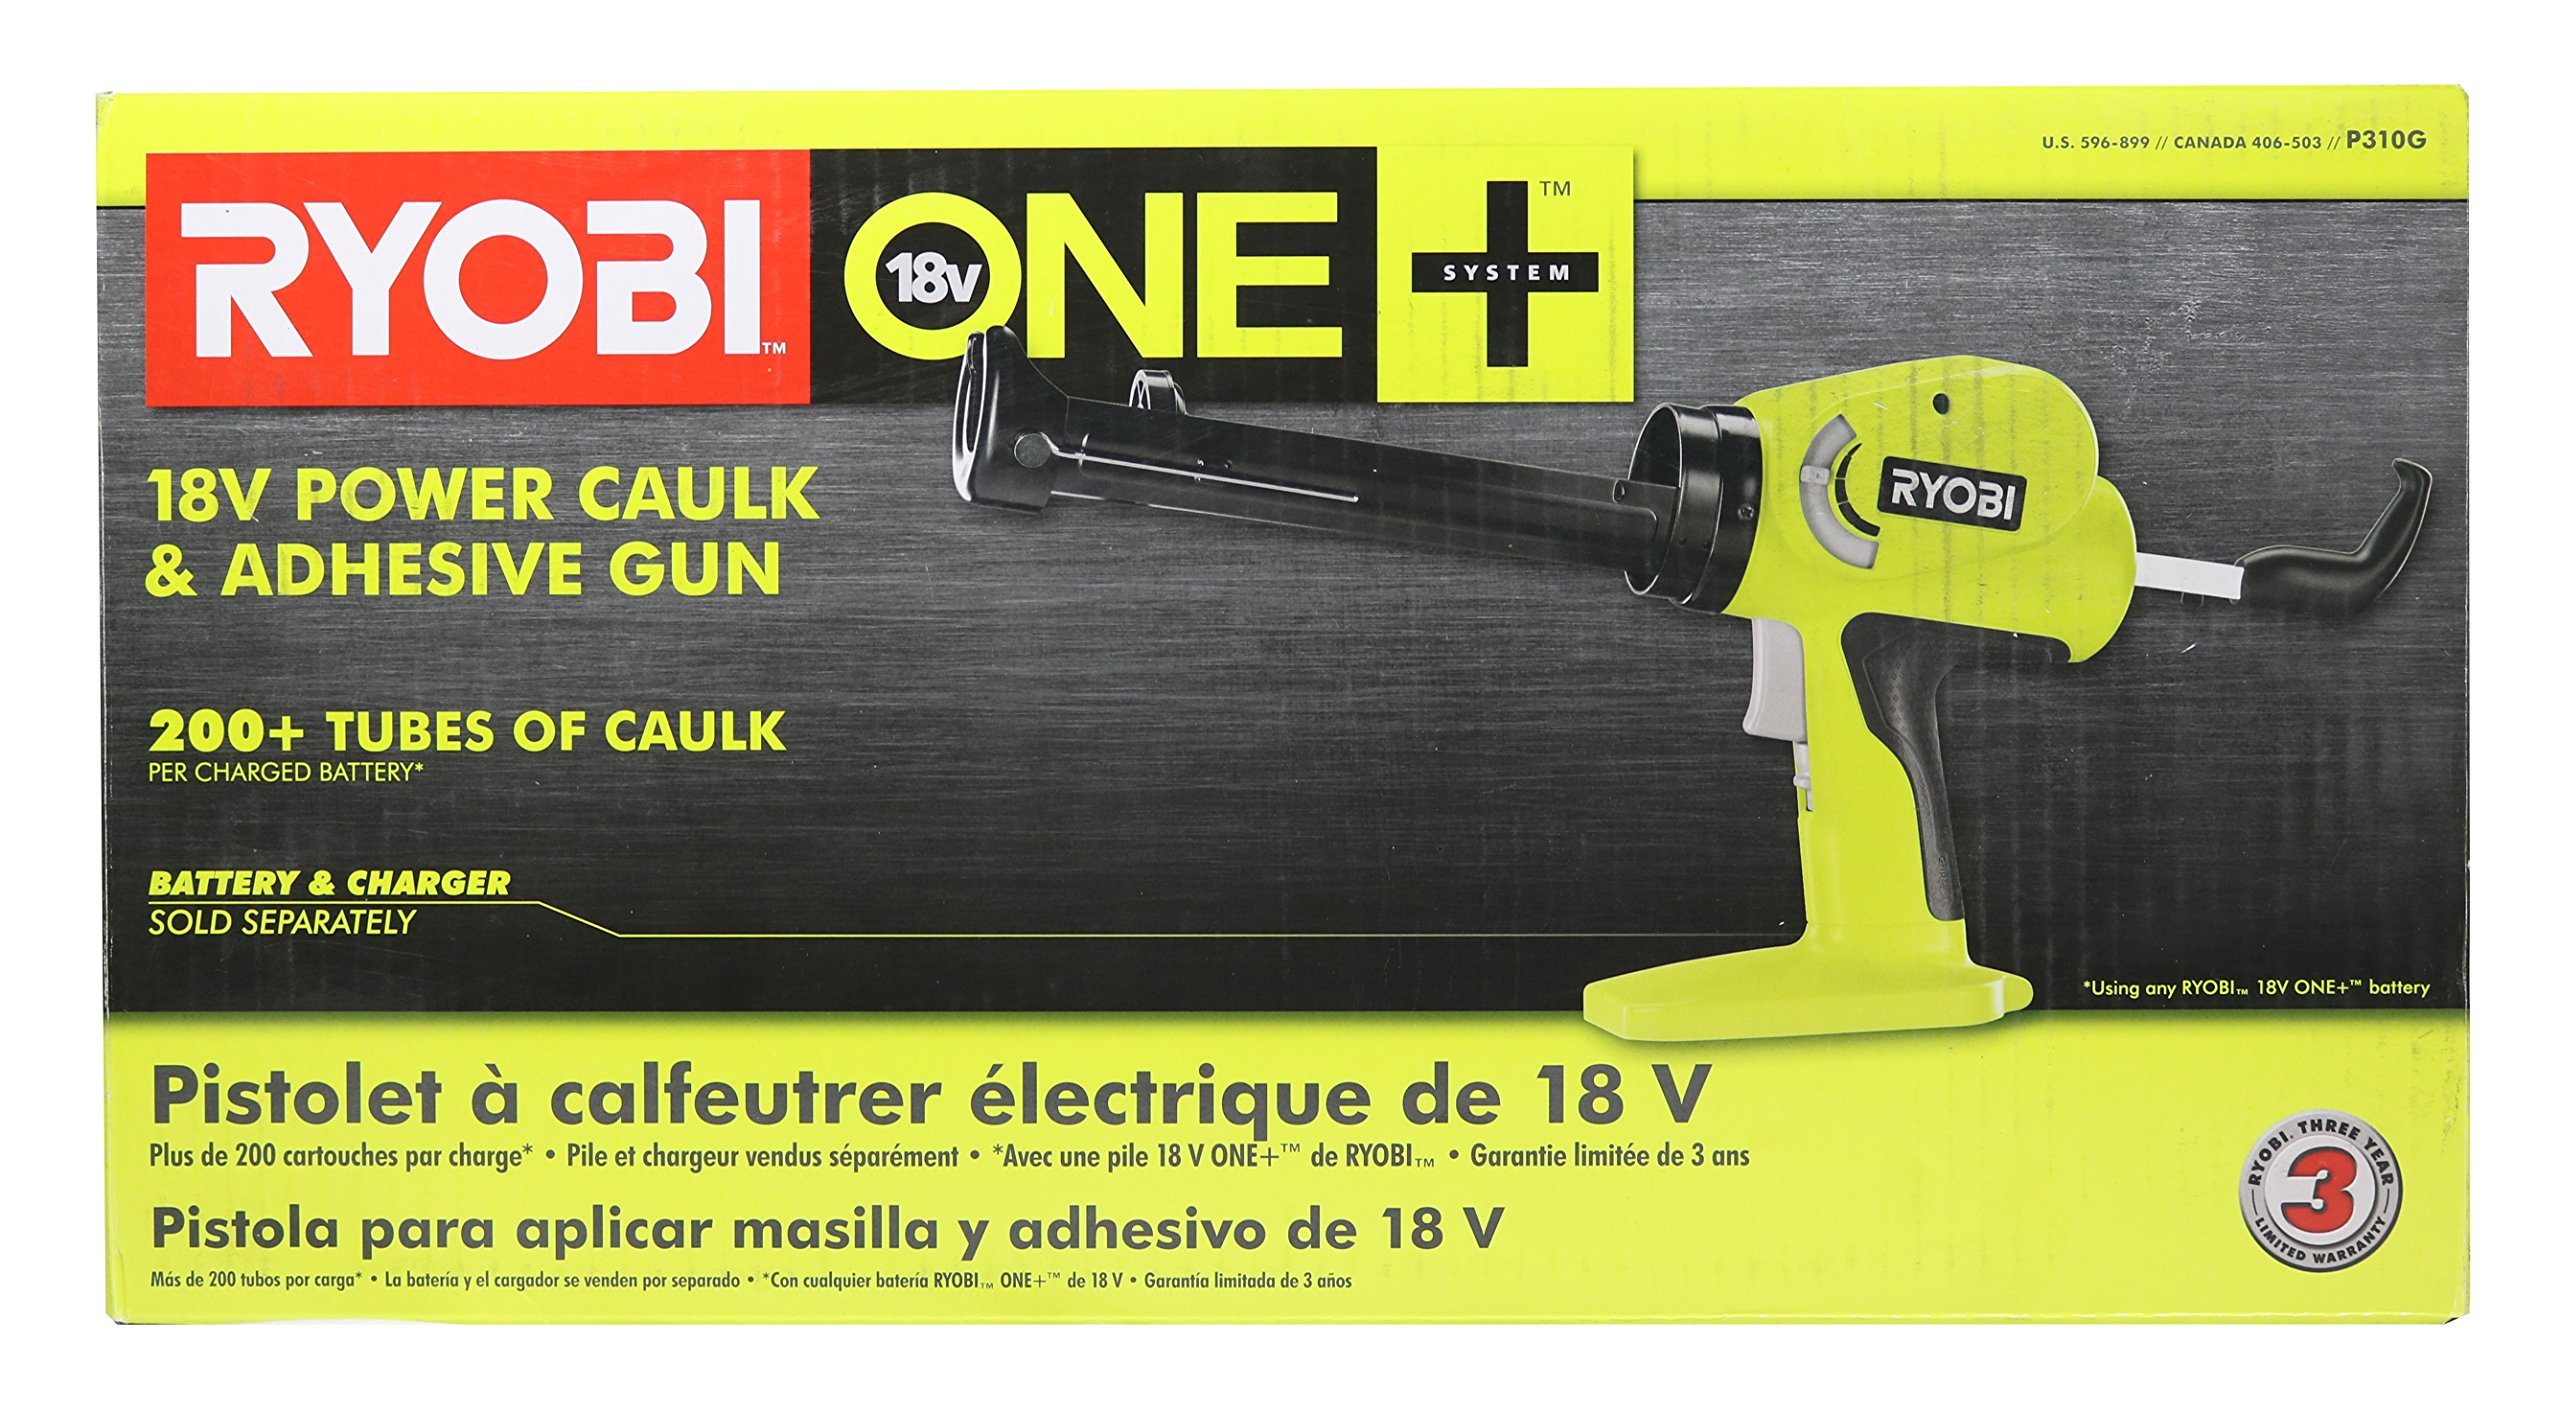 Ryobi P310G 18v Pistol Grip Variable Discharge Rate Power Caulk and Adhesive Gun (Tool Only, Holds 10 Ounce Carriage) by Ryobi (Image #8)